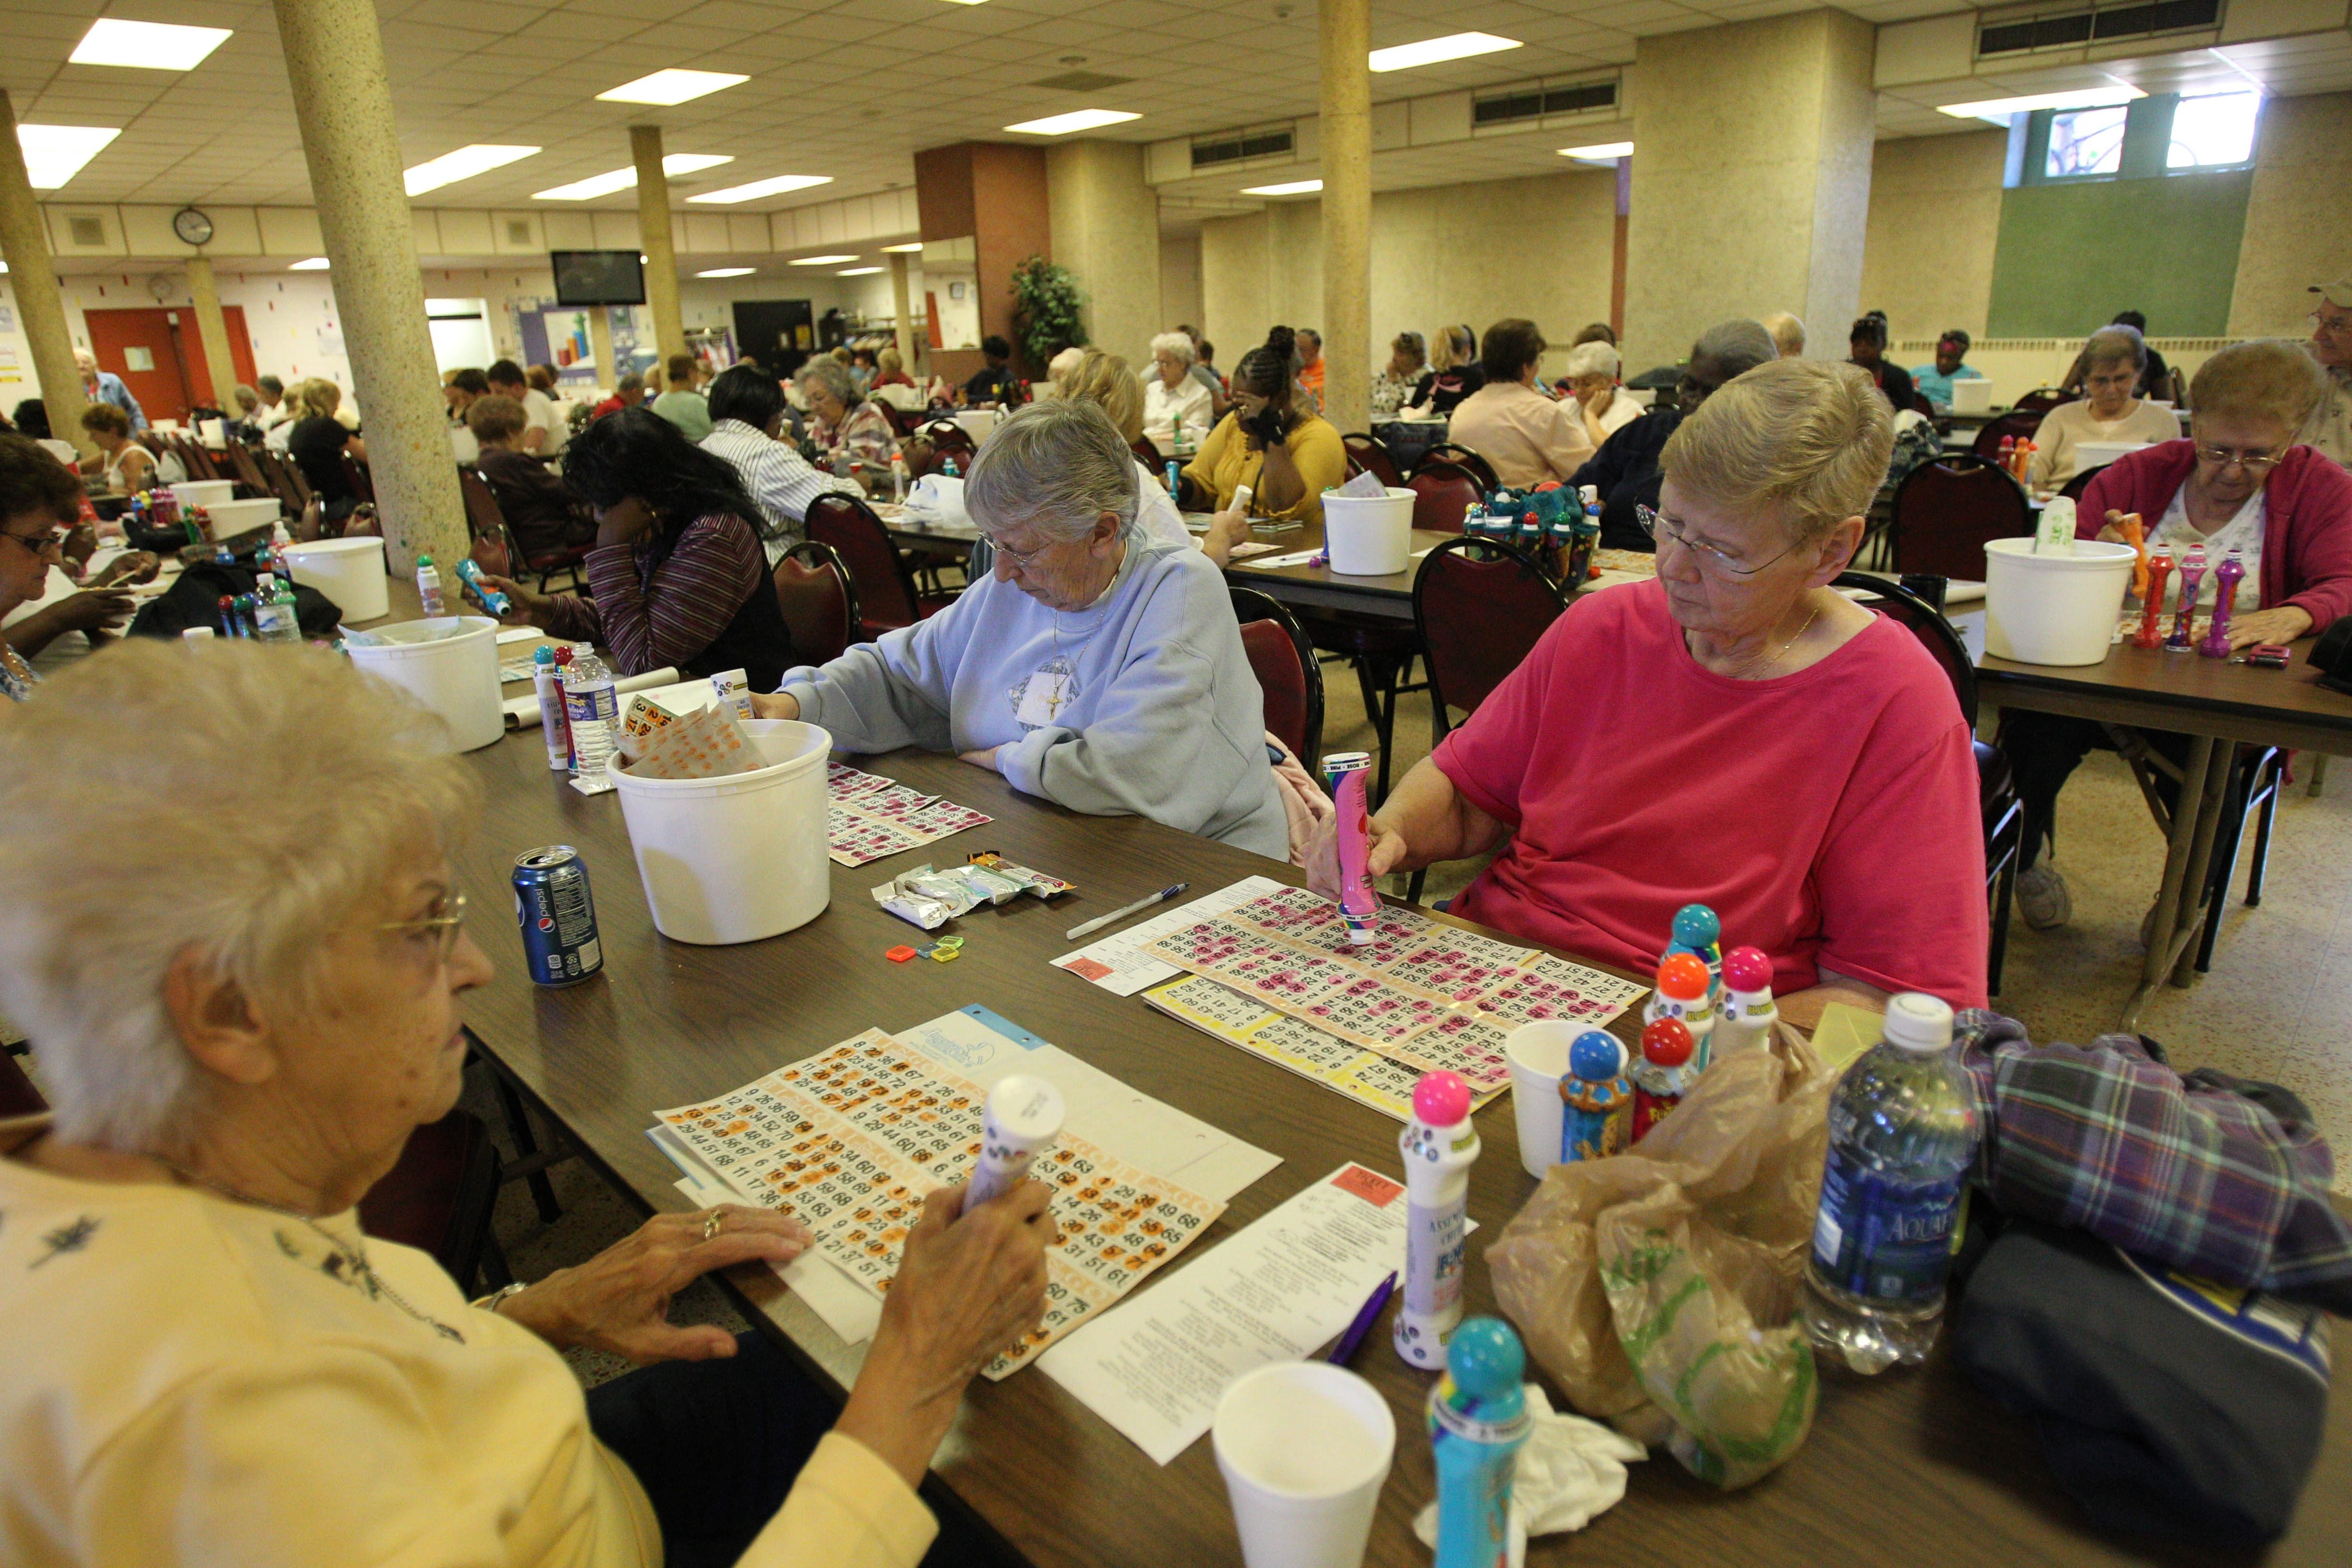 From left, Dorothy Wikierski, Jean Kusmierz and Ann Oxley enjoy playing bingo on Tuesdays at Assumption Church in Black Rock.